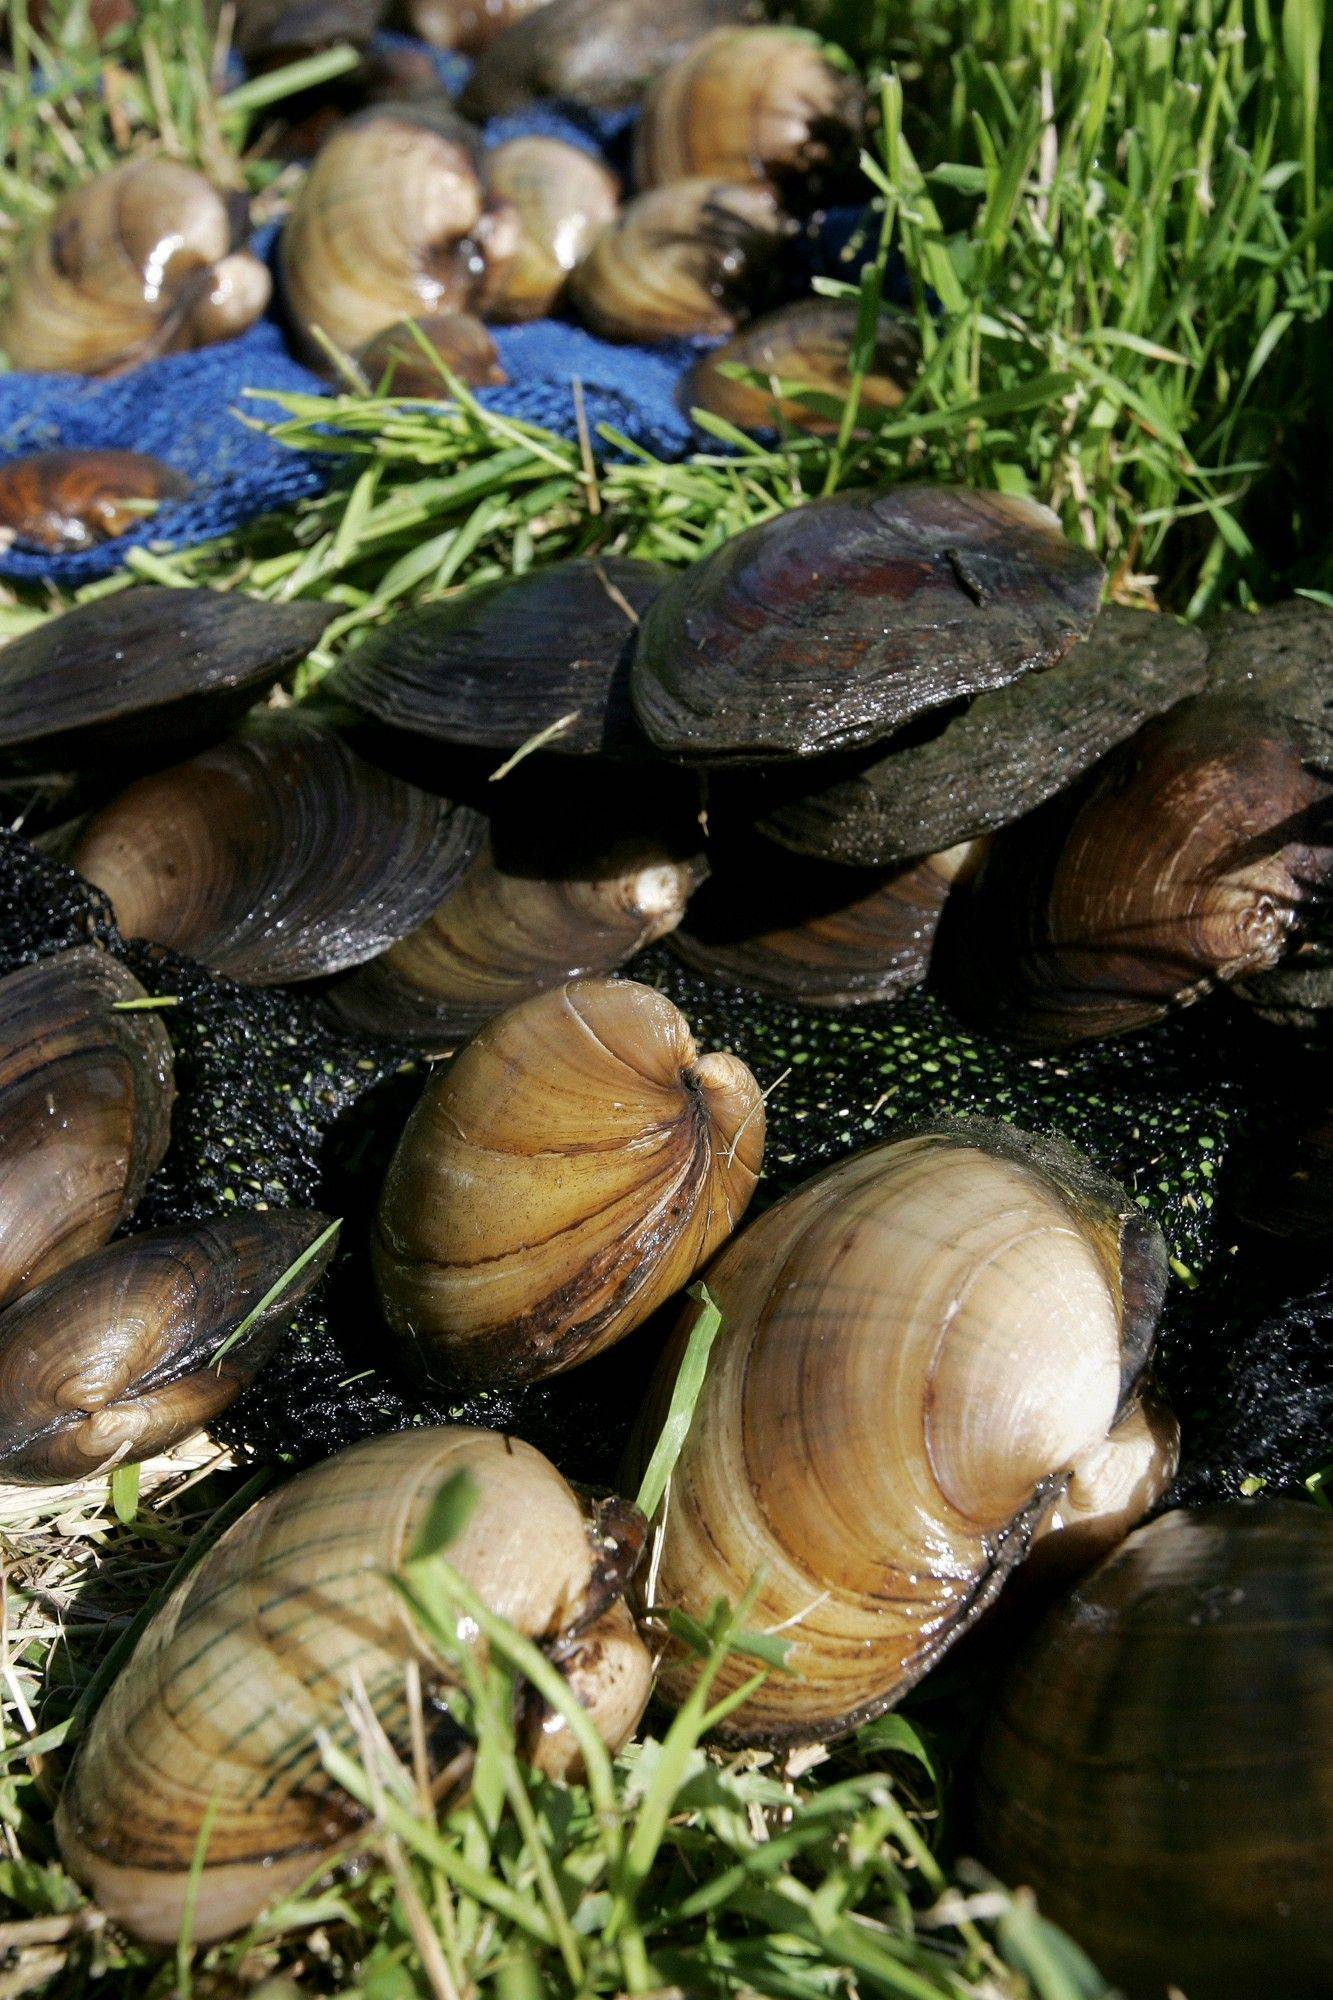 Seventy-eight mussels from nine species were found by a survey group in the Kilbuck Creek near Sycamore, Ill. The group was documenting the presence of mussels in Illinois creeks, rivers and waterways.